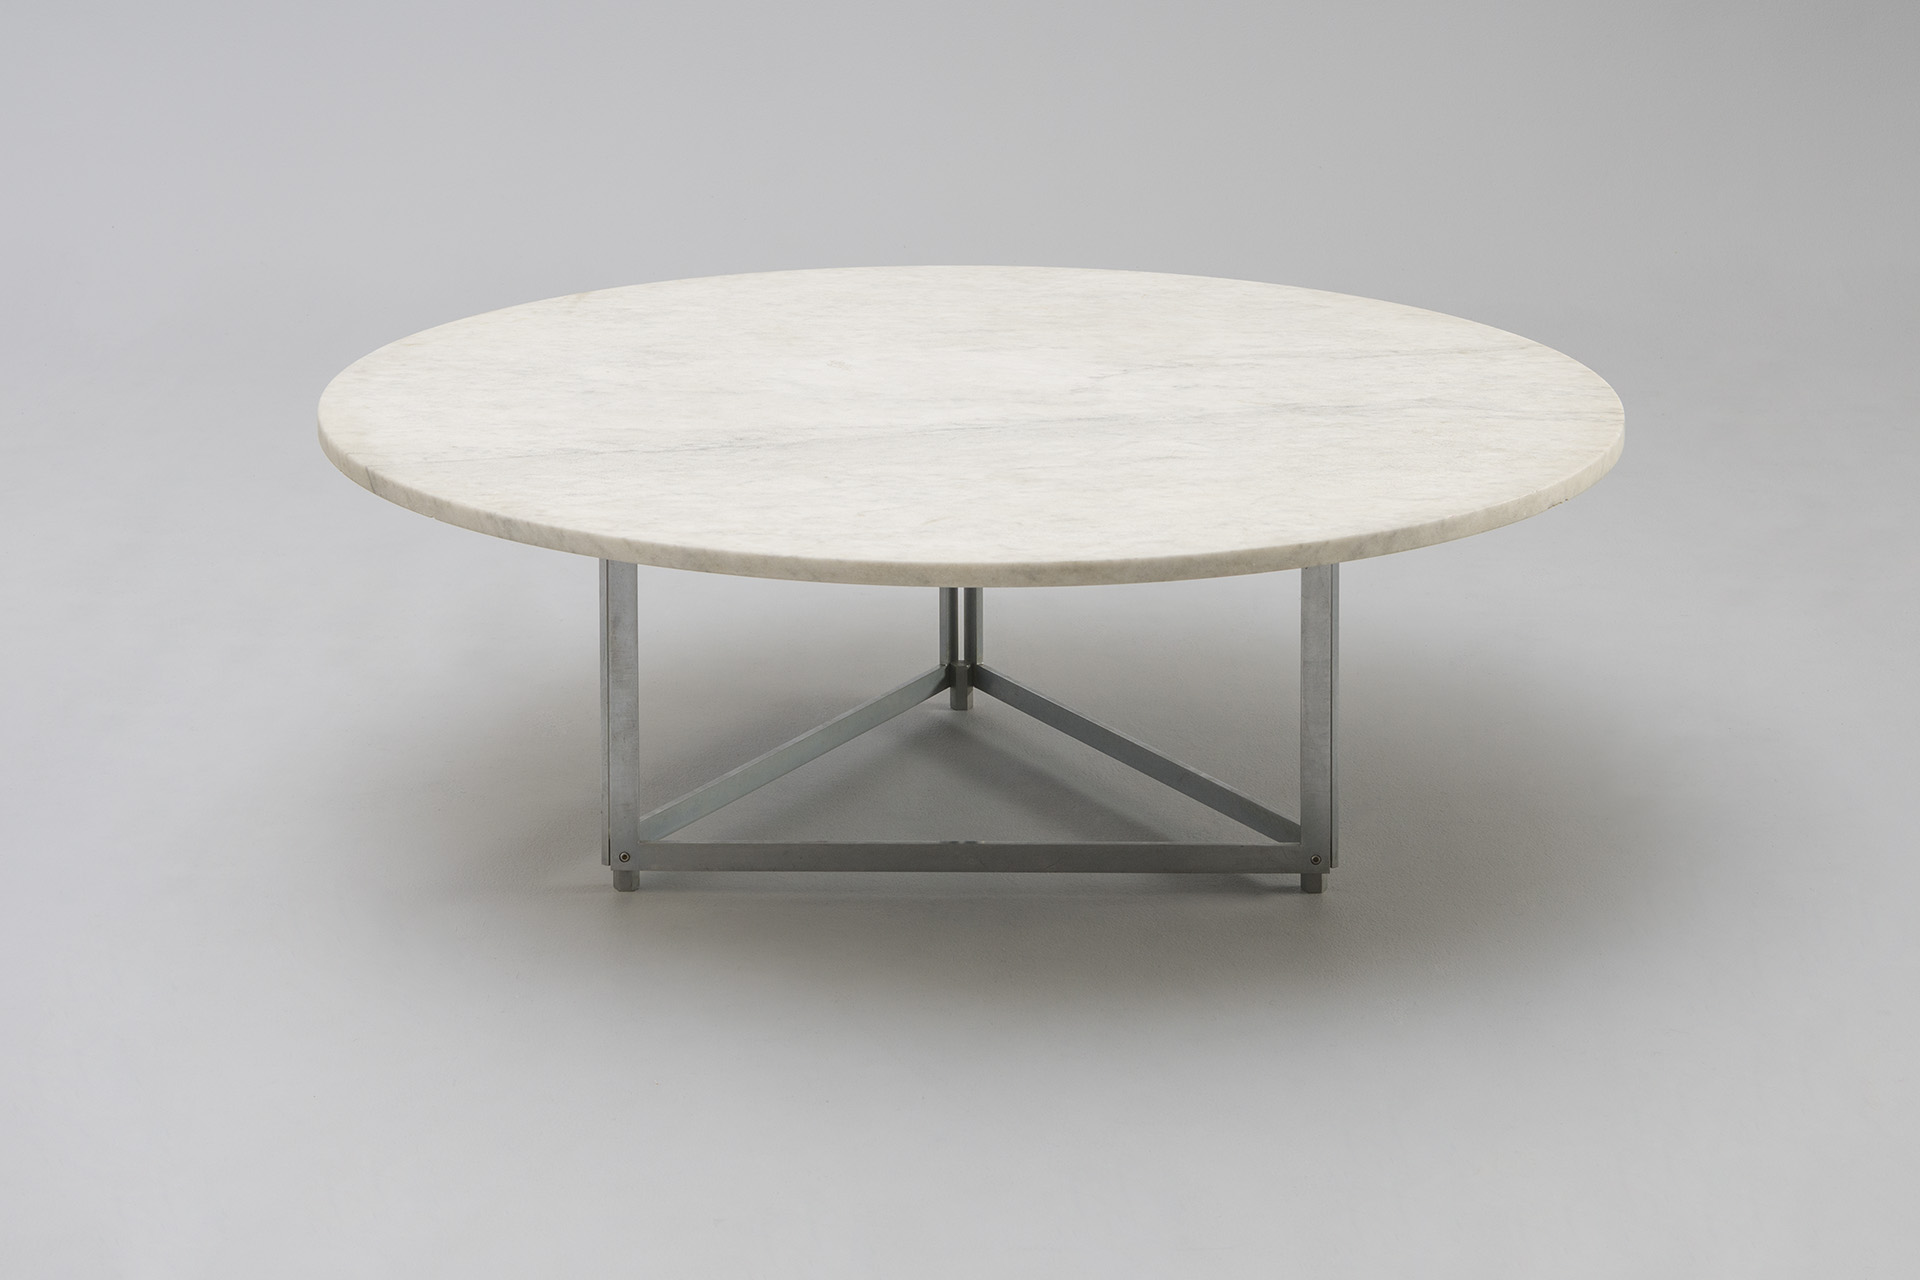 Rare Coffee Table, Model no. PK 56